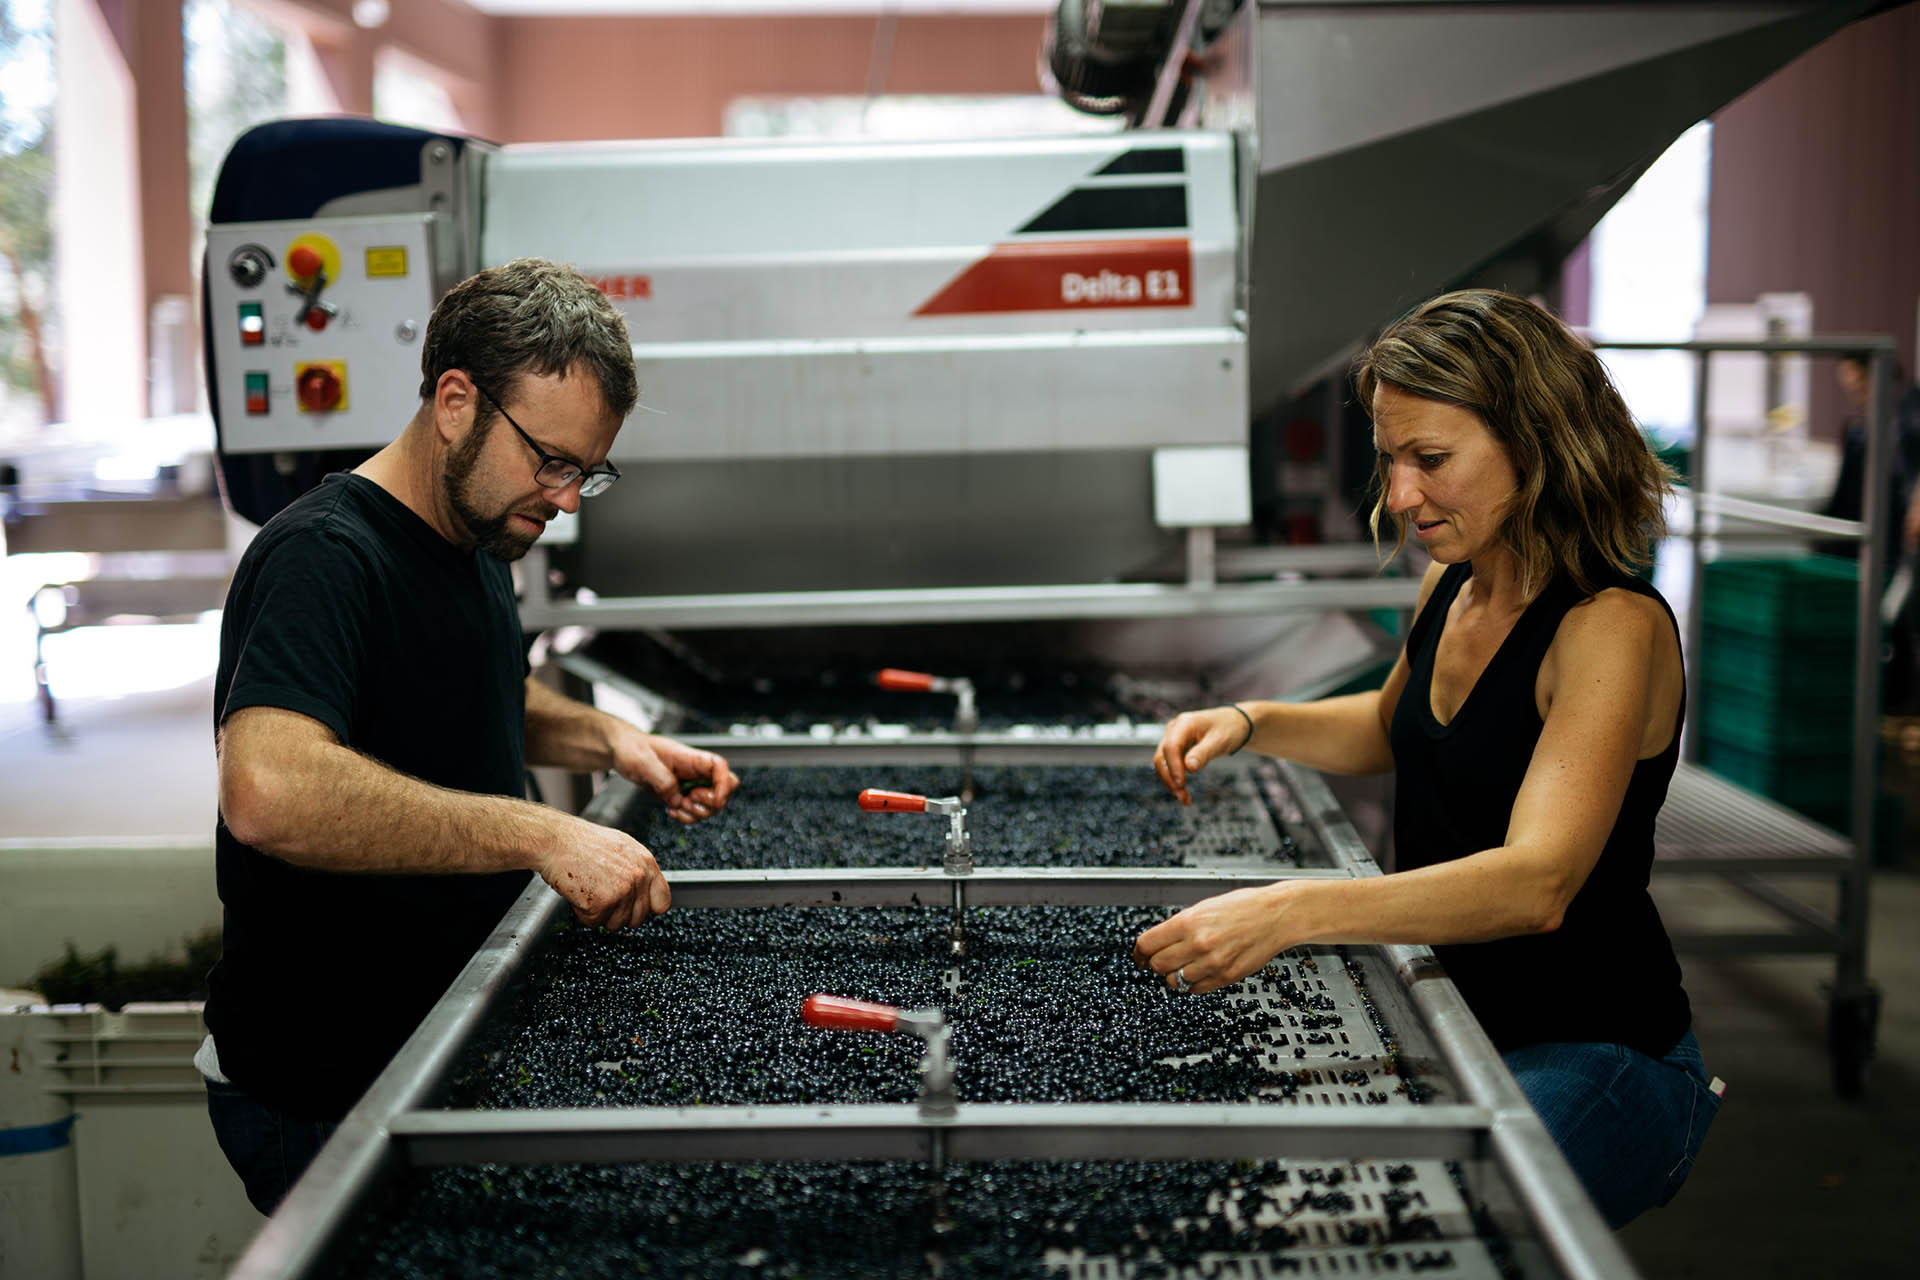 Napa Winemakers' After-hours Passion Projects Fuel Creativity And Community photo